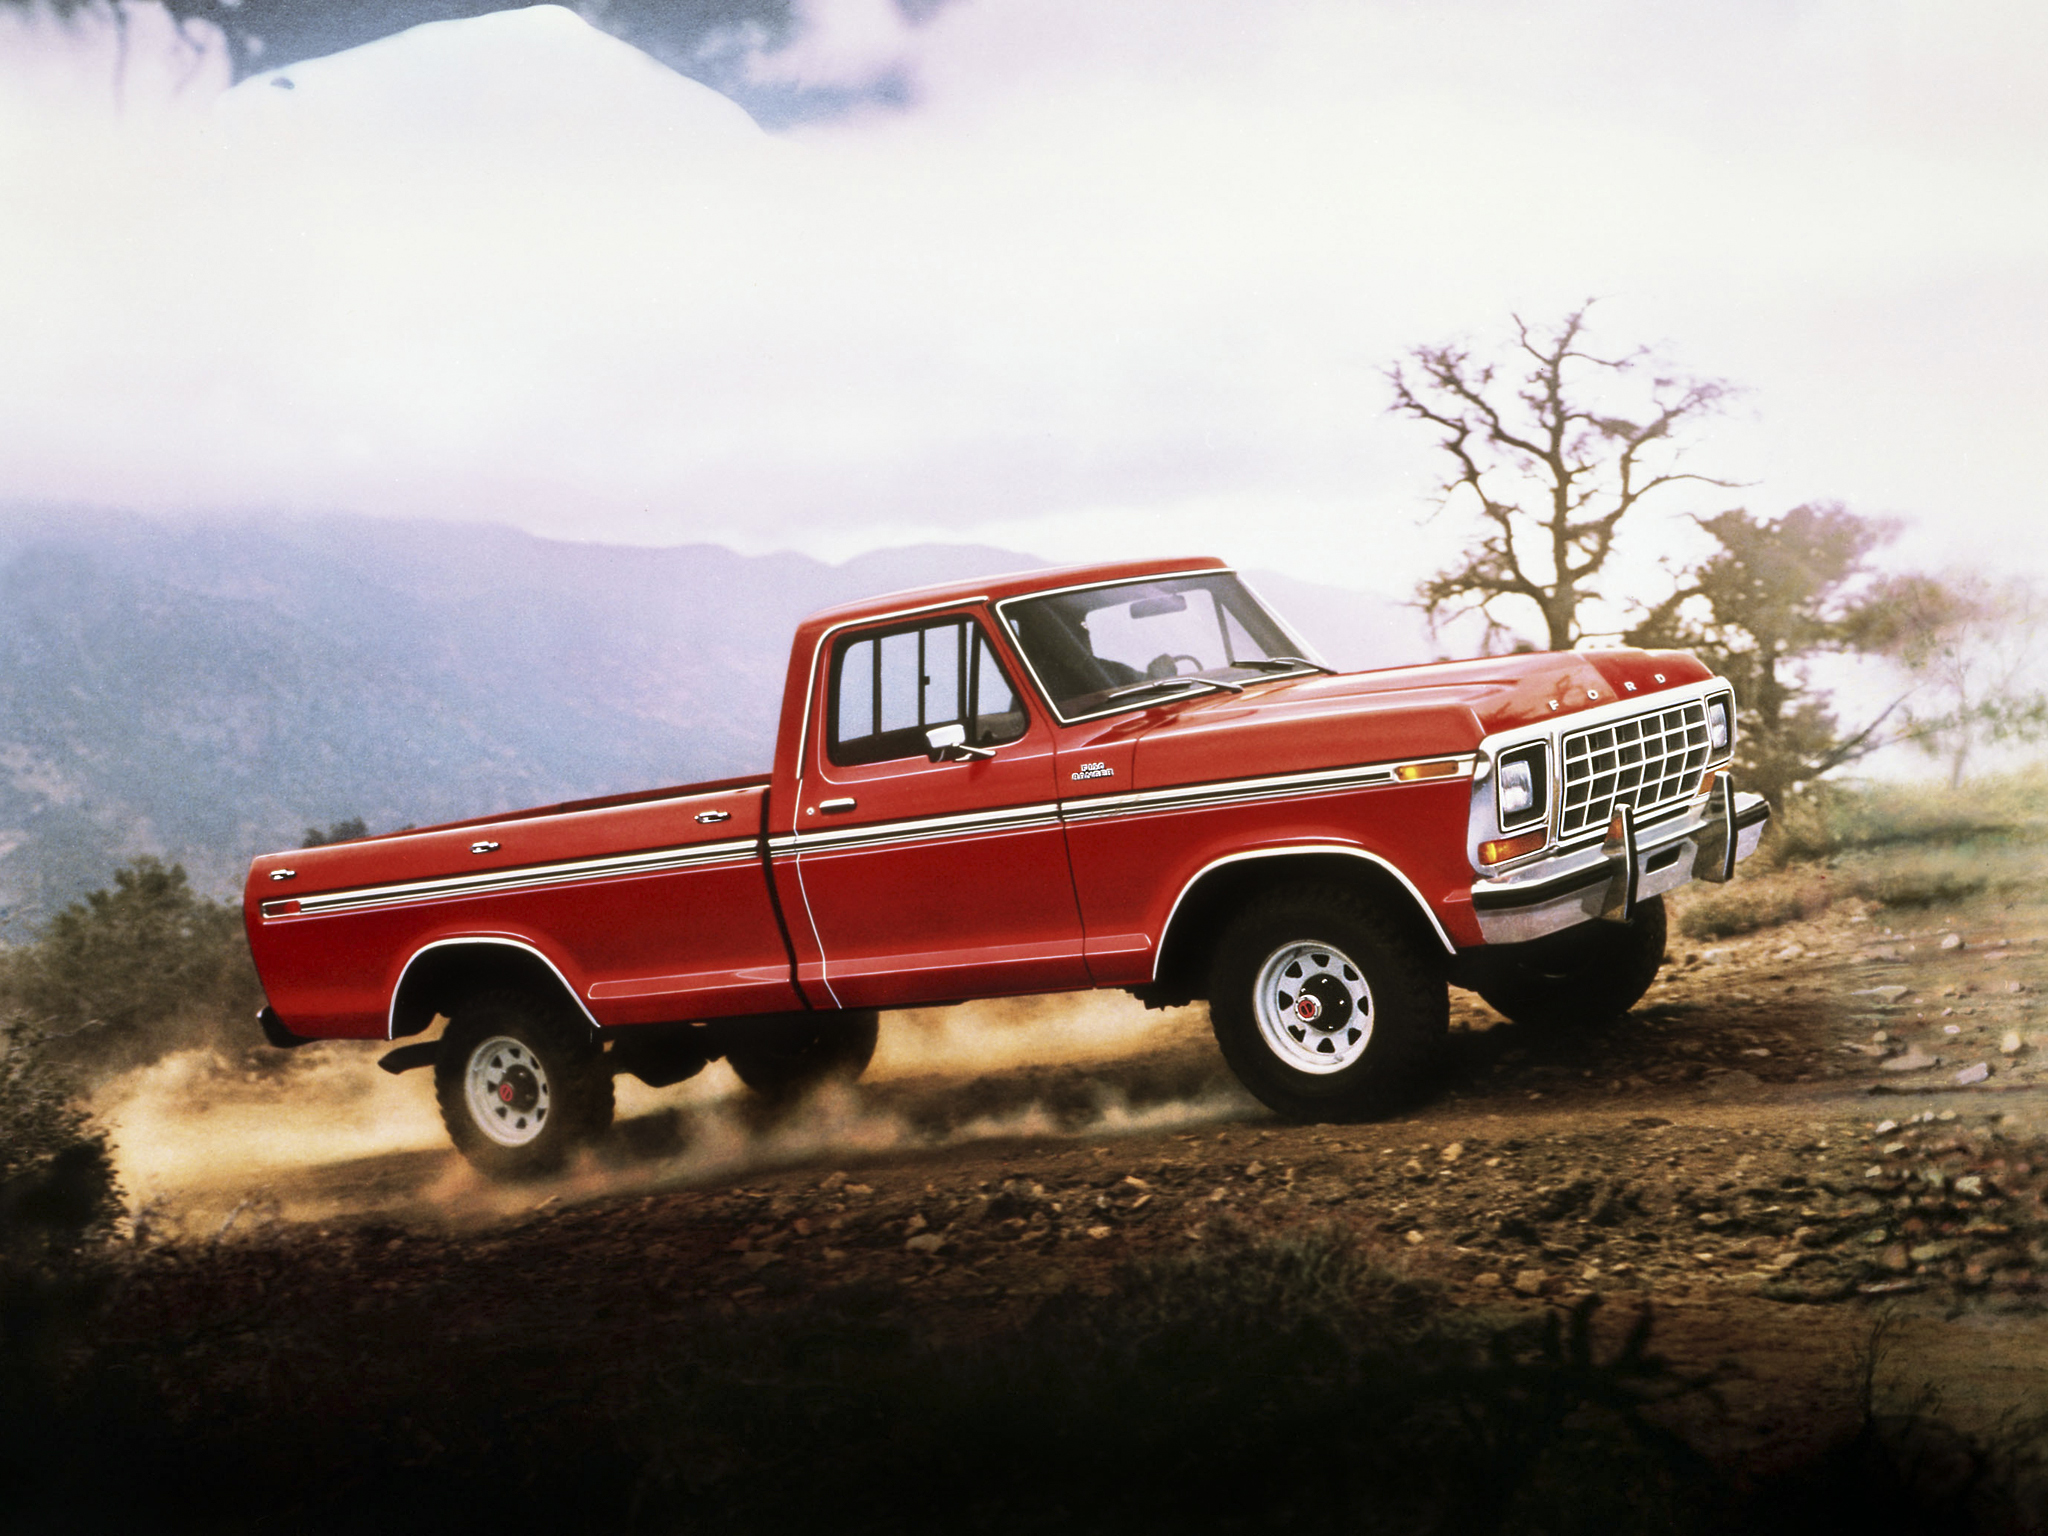 Ford Truck Wallpapers HD | PixelsTalk Net